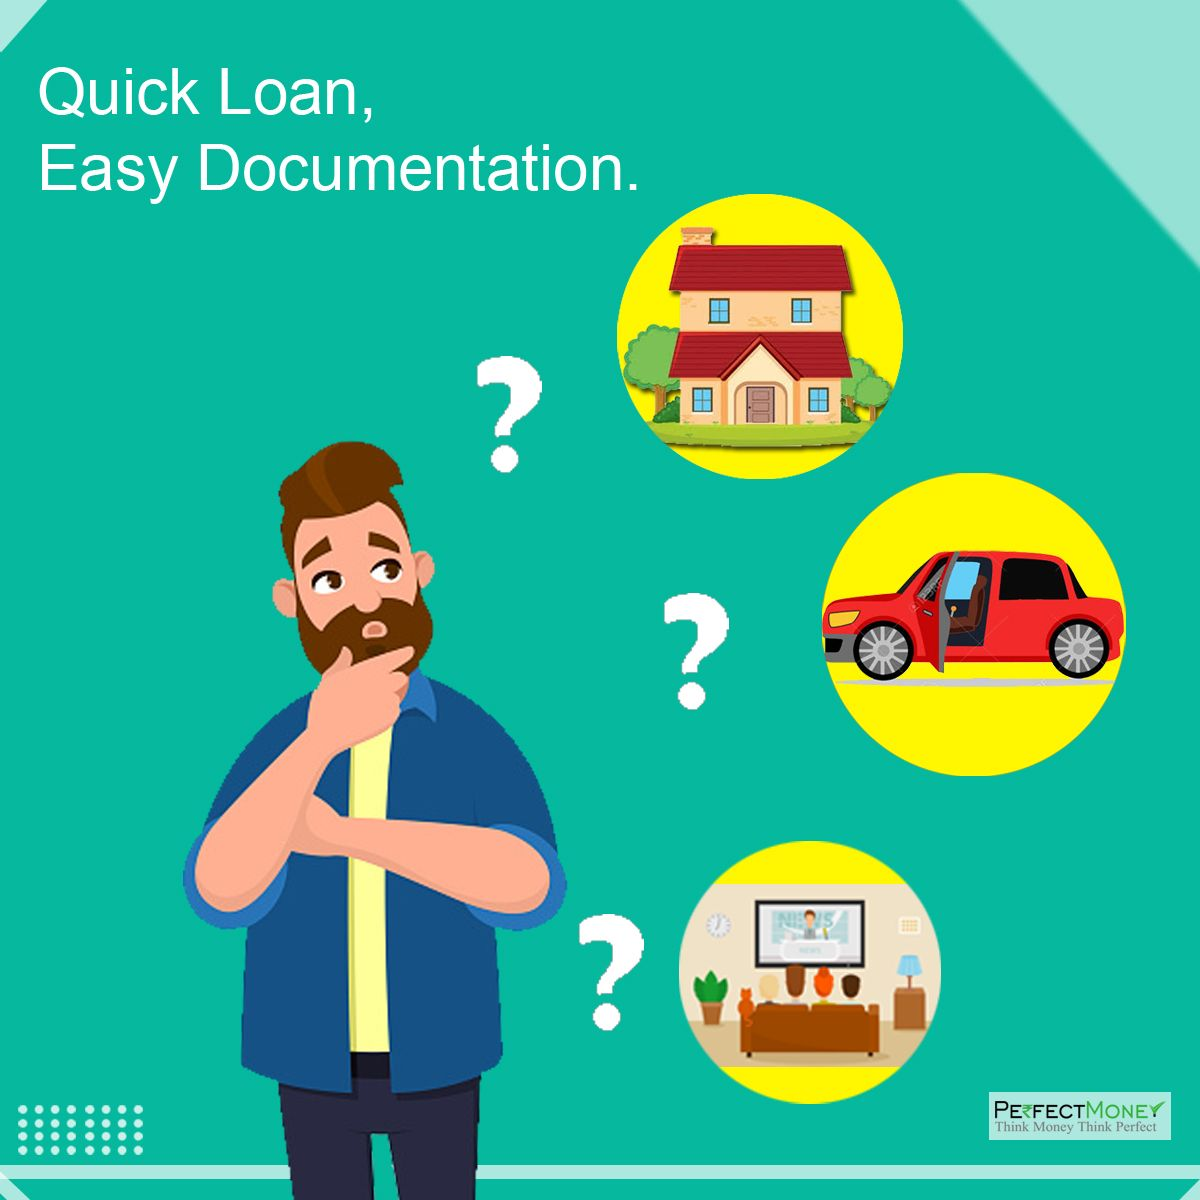 Our Services Designed As Per Your Unique Needs Call Us Today 91 9169 500 500 And Get The Best Deals On Pe Personal Loans Online Perfect Money Best Loans